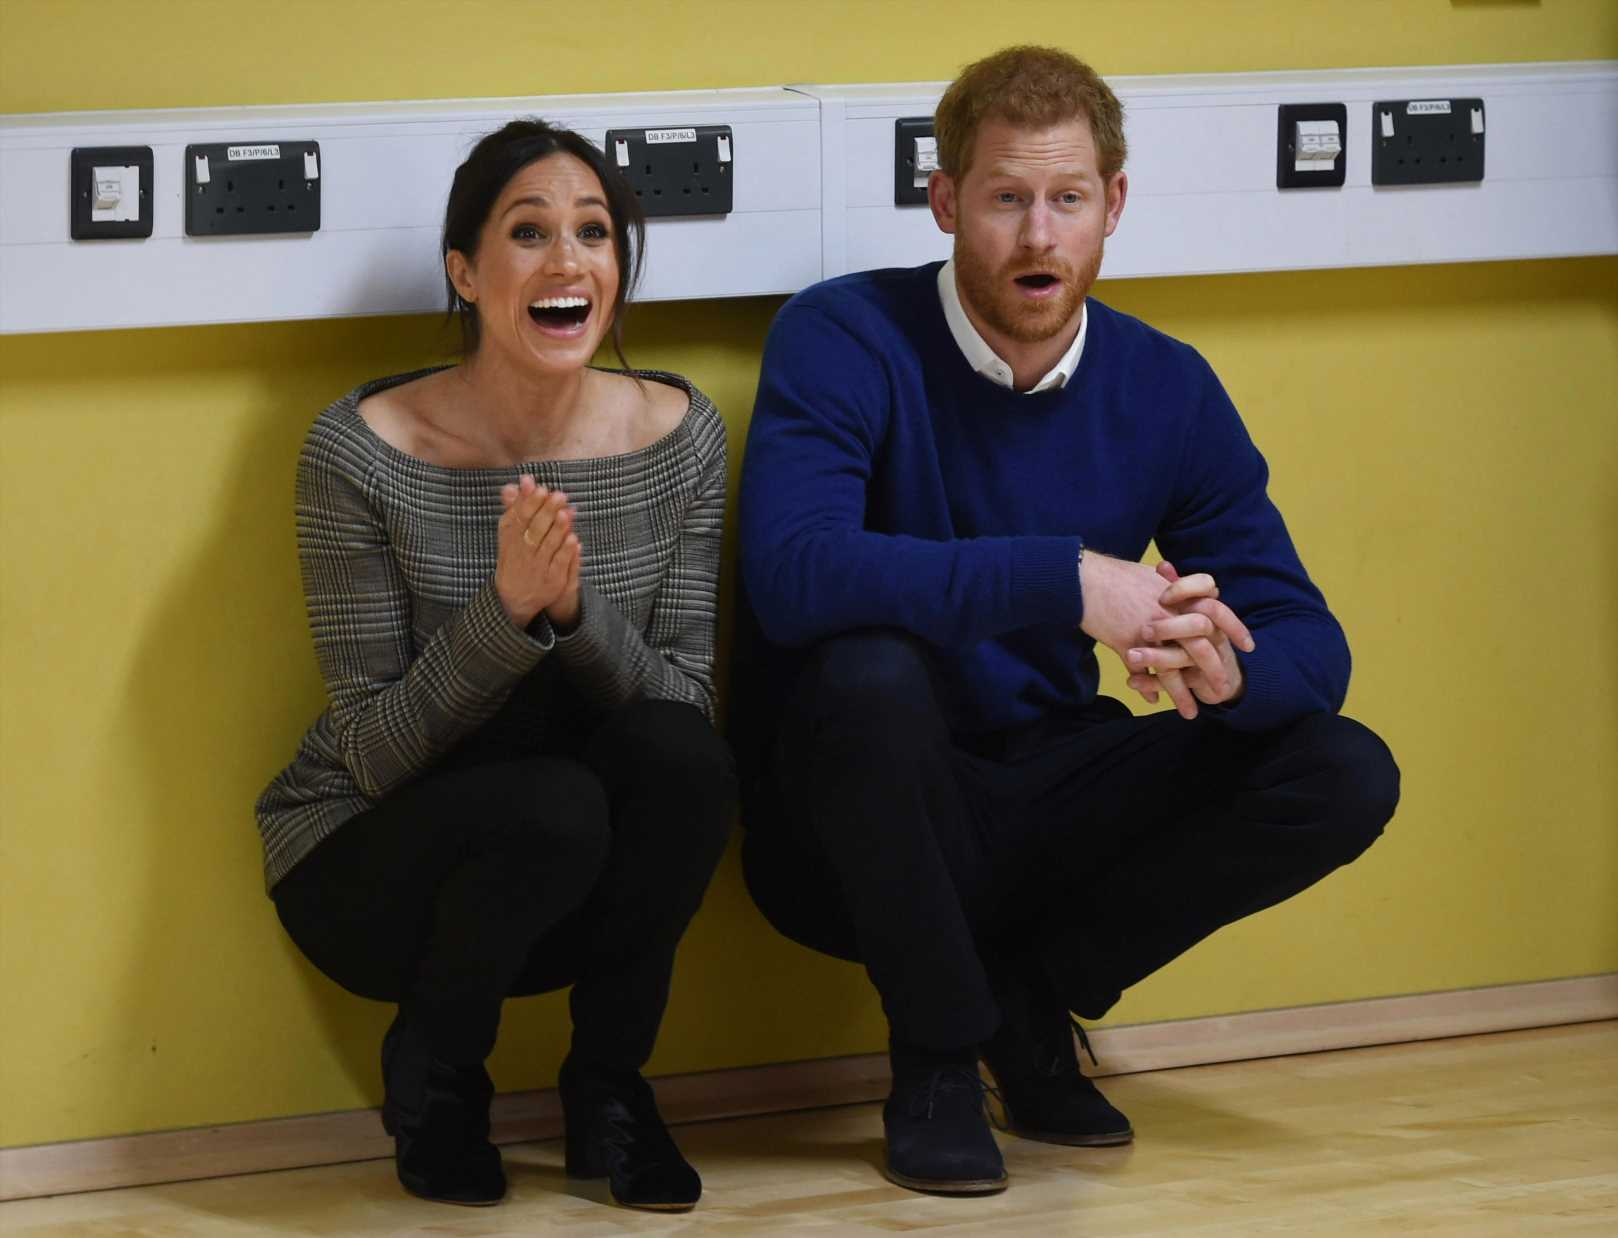 Meghan Markle and Prince Harry's 'rebel' Royal baby may struggle to follow protocol, astrologer claims